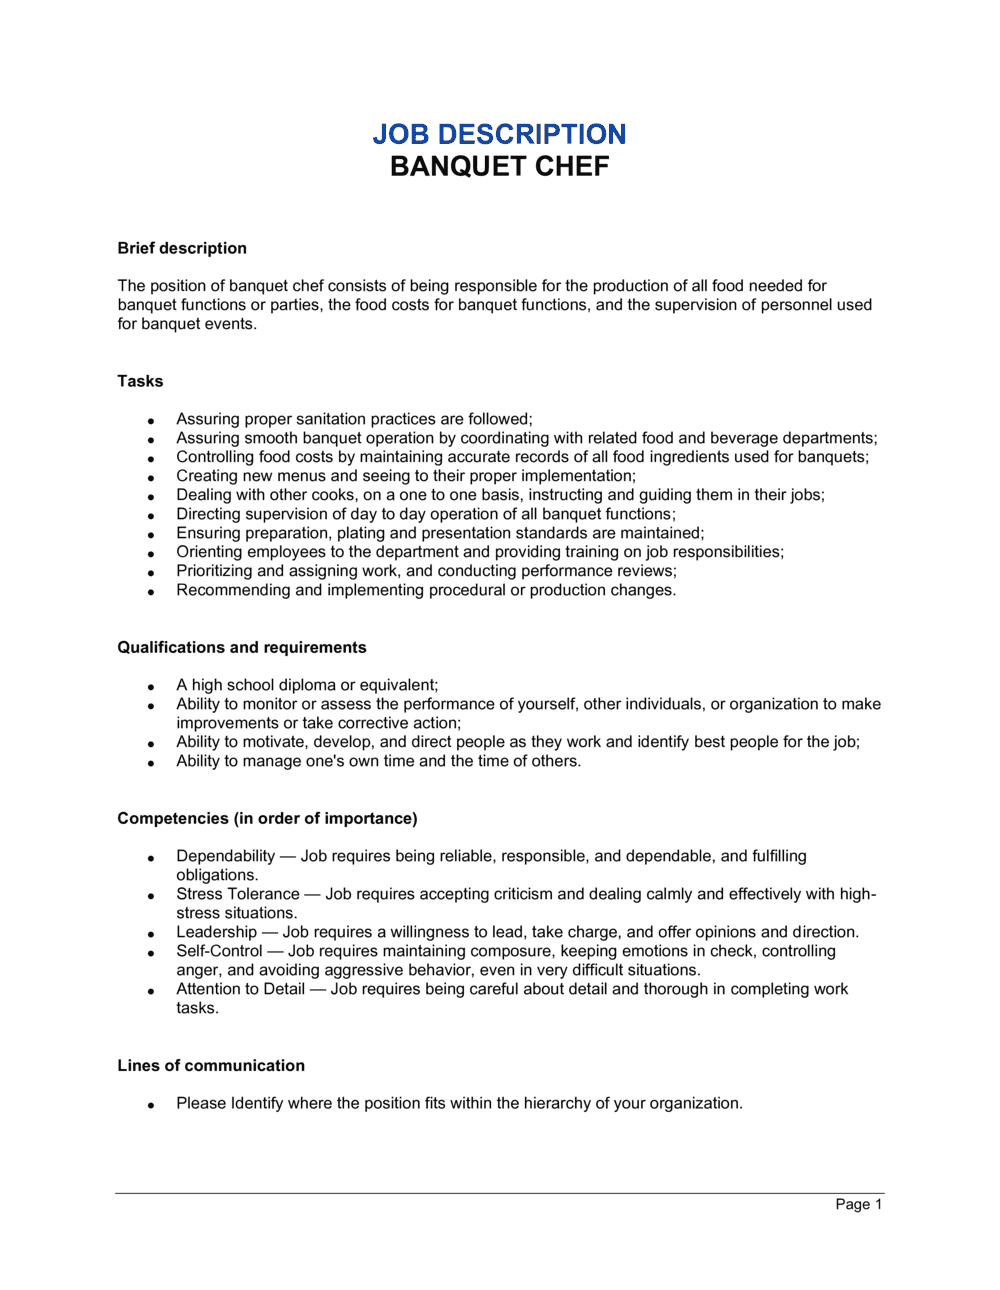 Business-in-a-Box's Banquet Chef Job Description Template